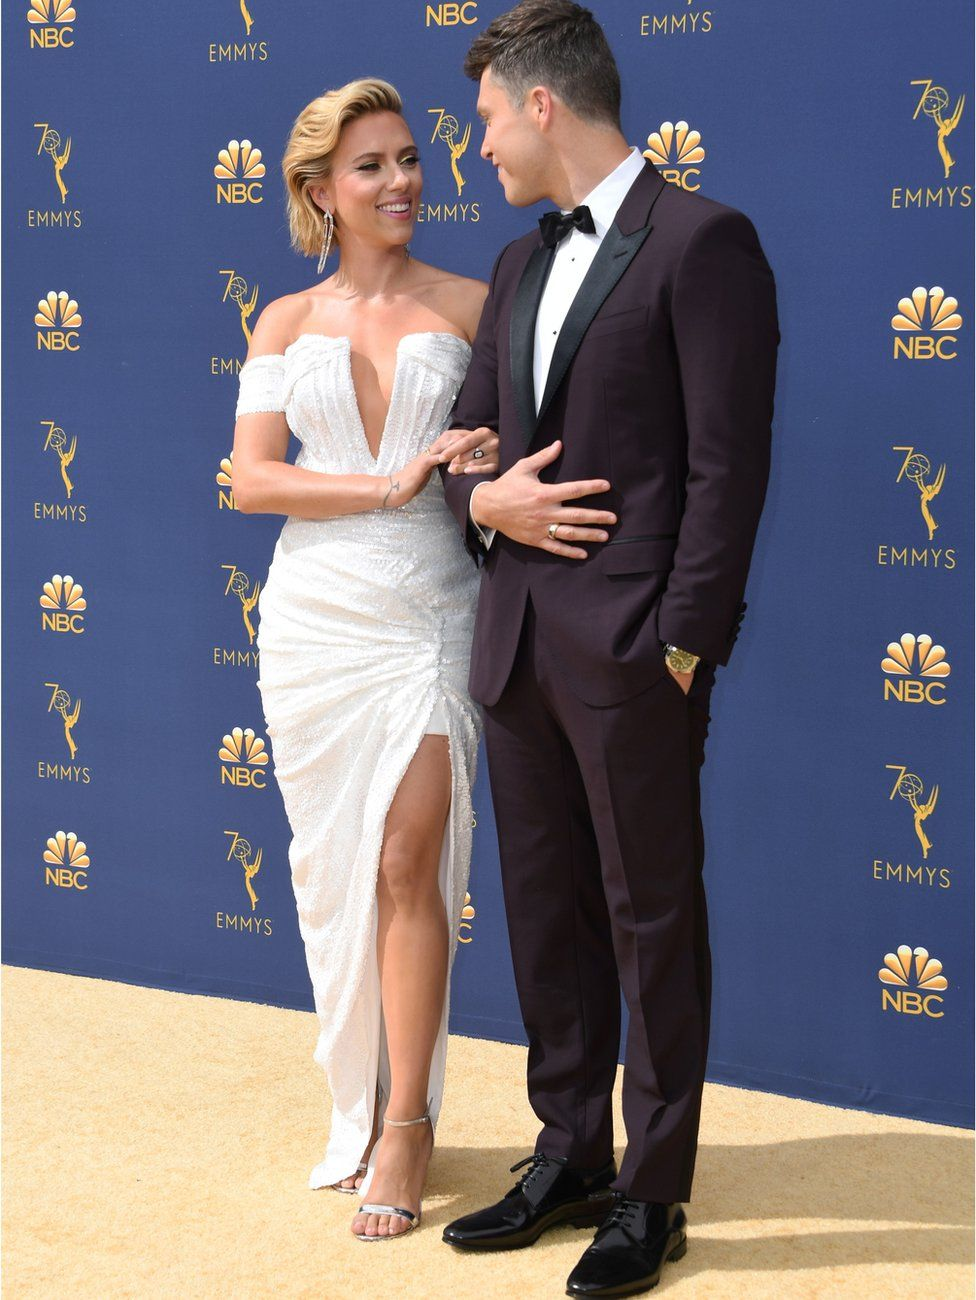 Scarlett Johansson with partner and Saturday Night Live star Colin Jost